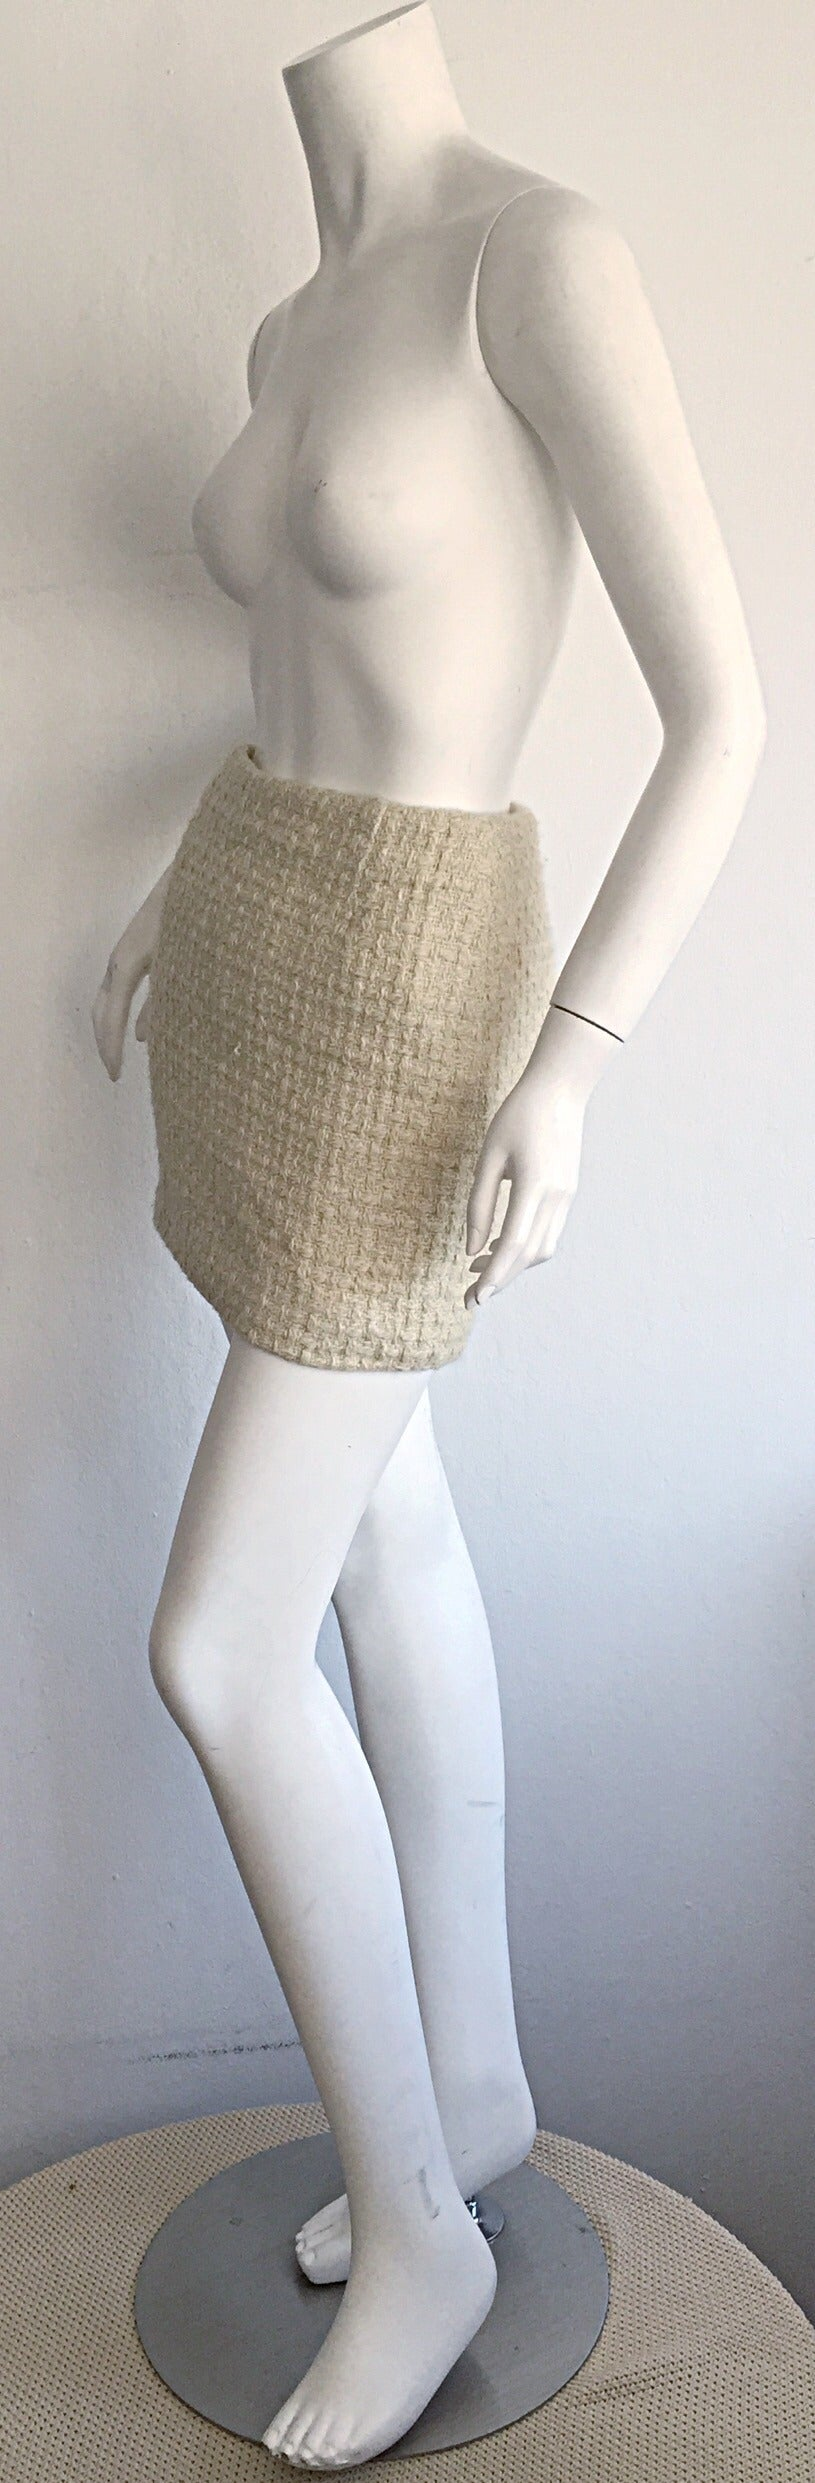 Sexy 1990s Vintage Gianni Versace Couture Ivory Off - White Cashmere Mini Skirt 3